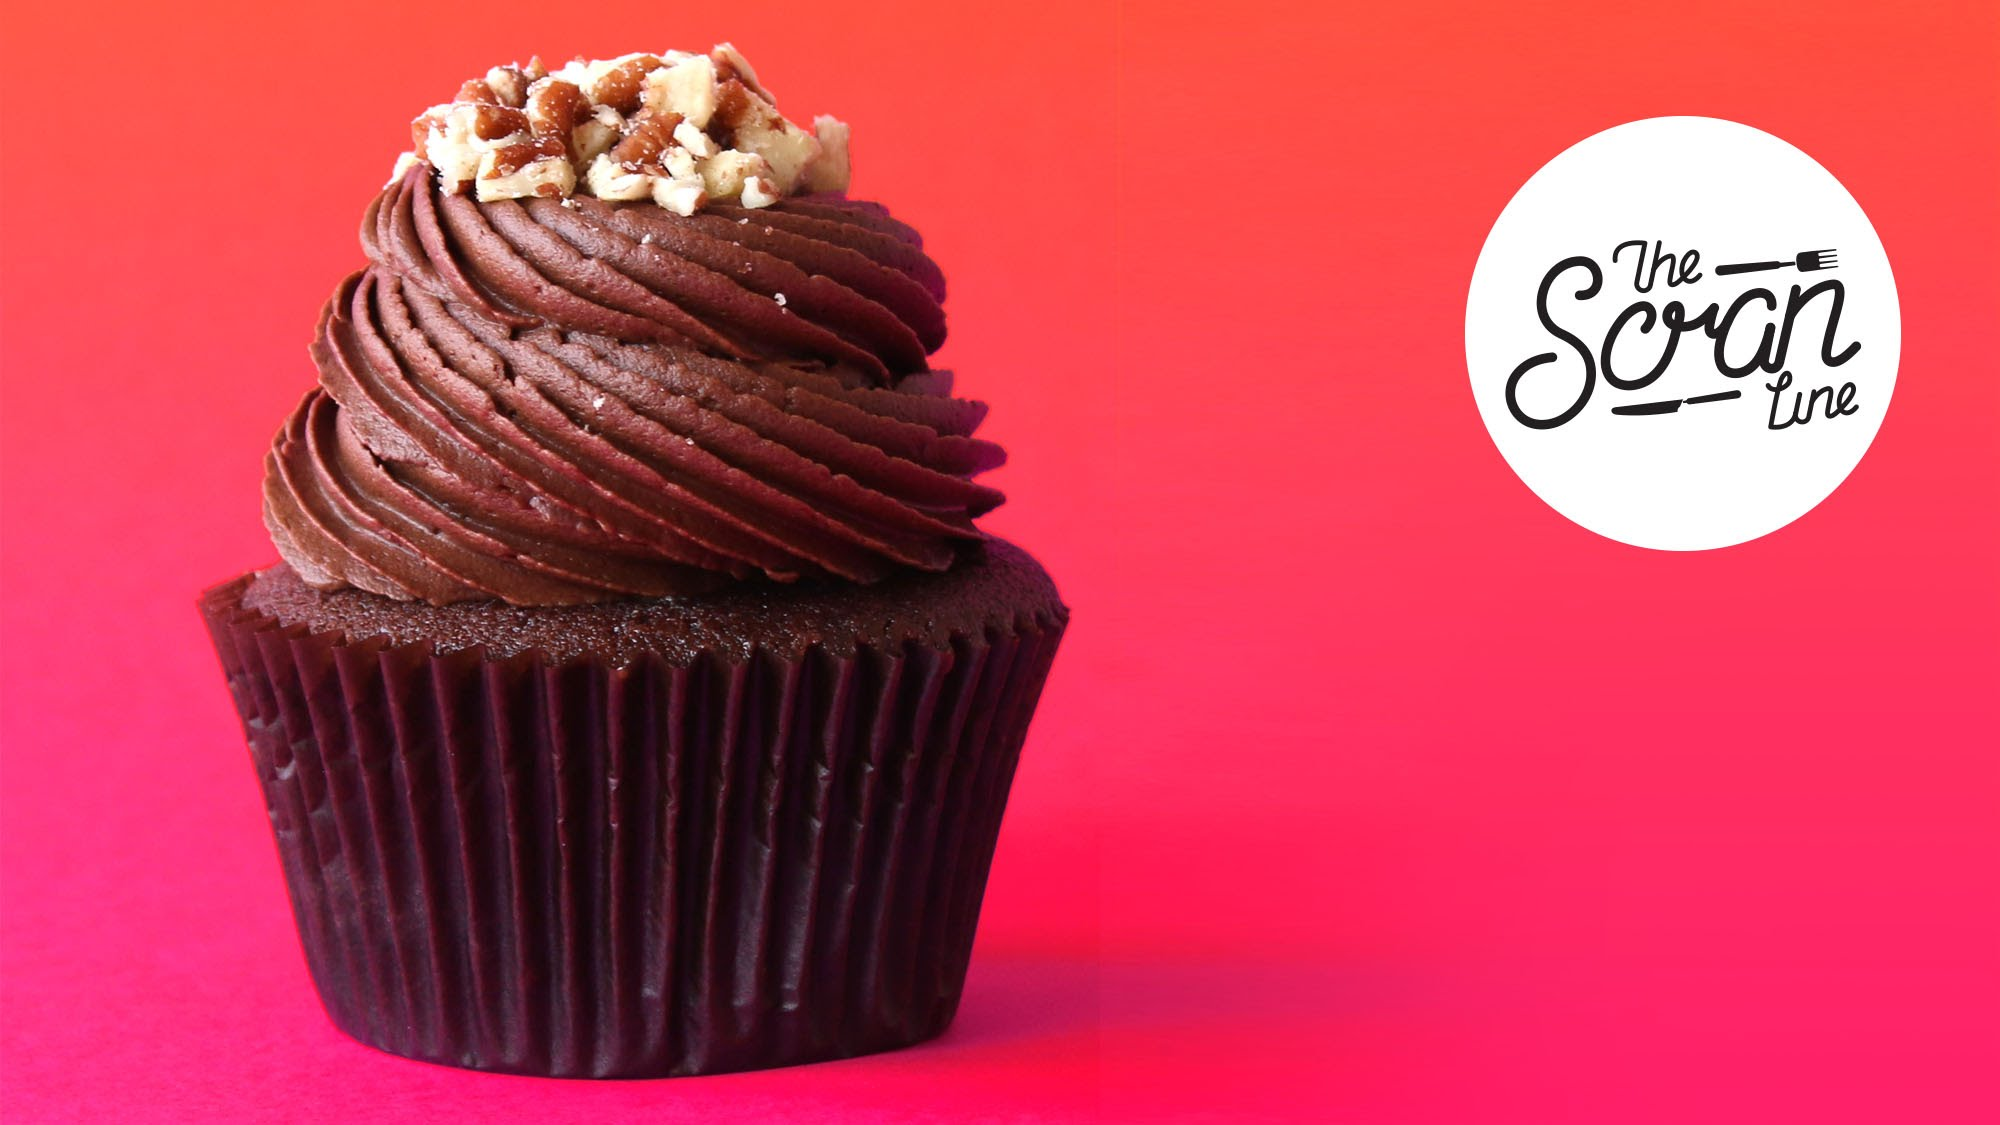 This Perfect German Chocolate Cupcake Has An Even Better Surprise Inside